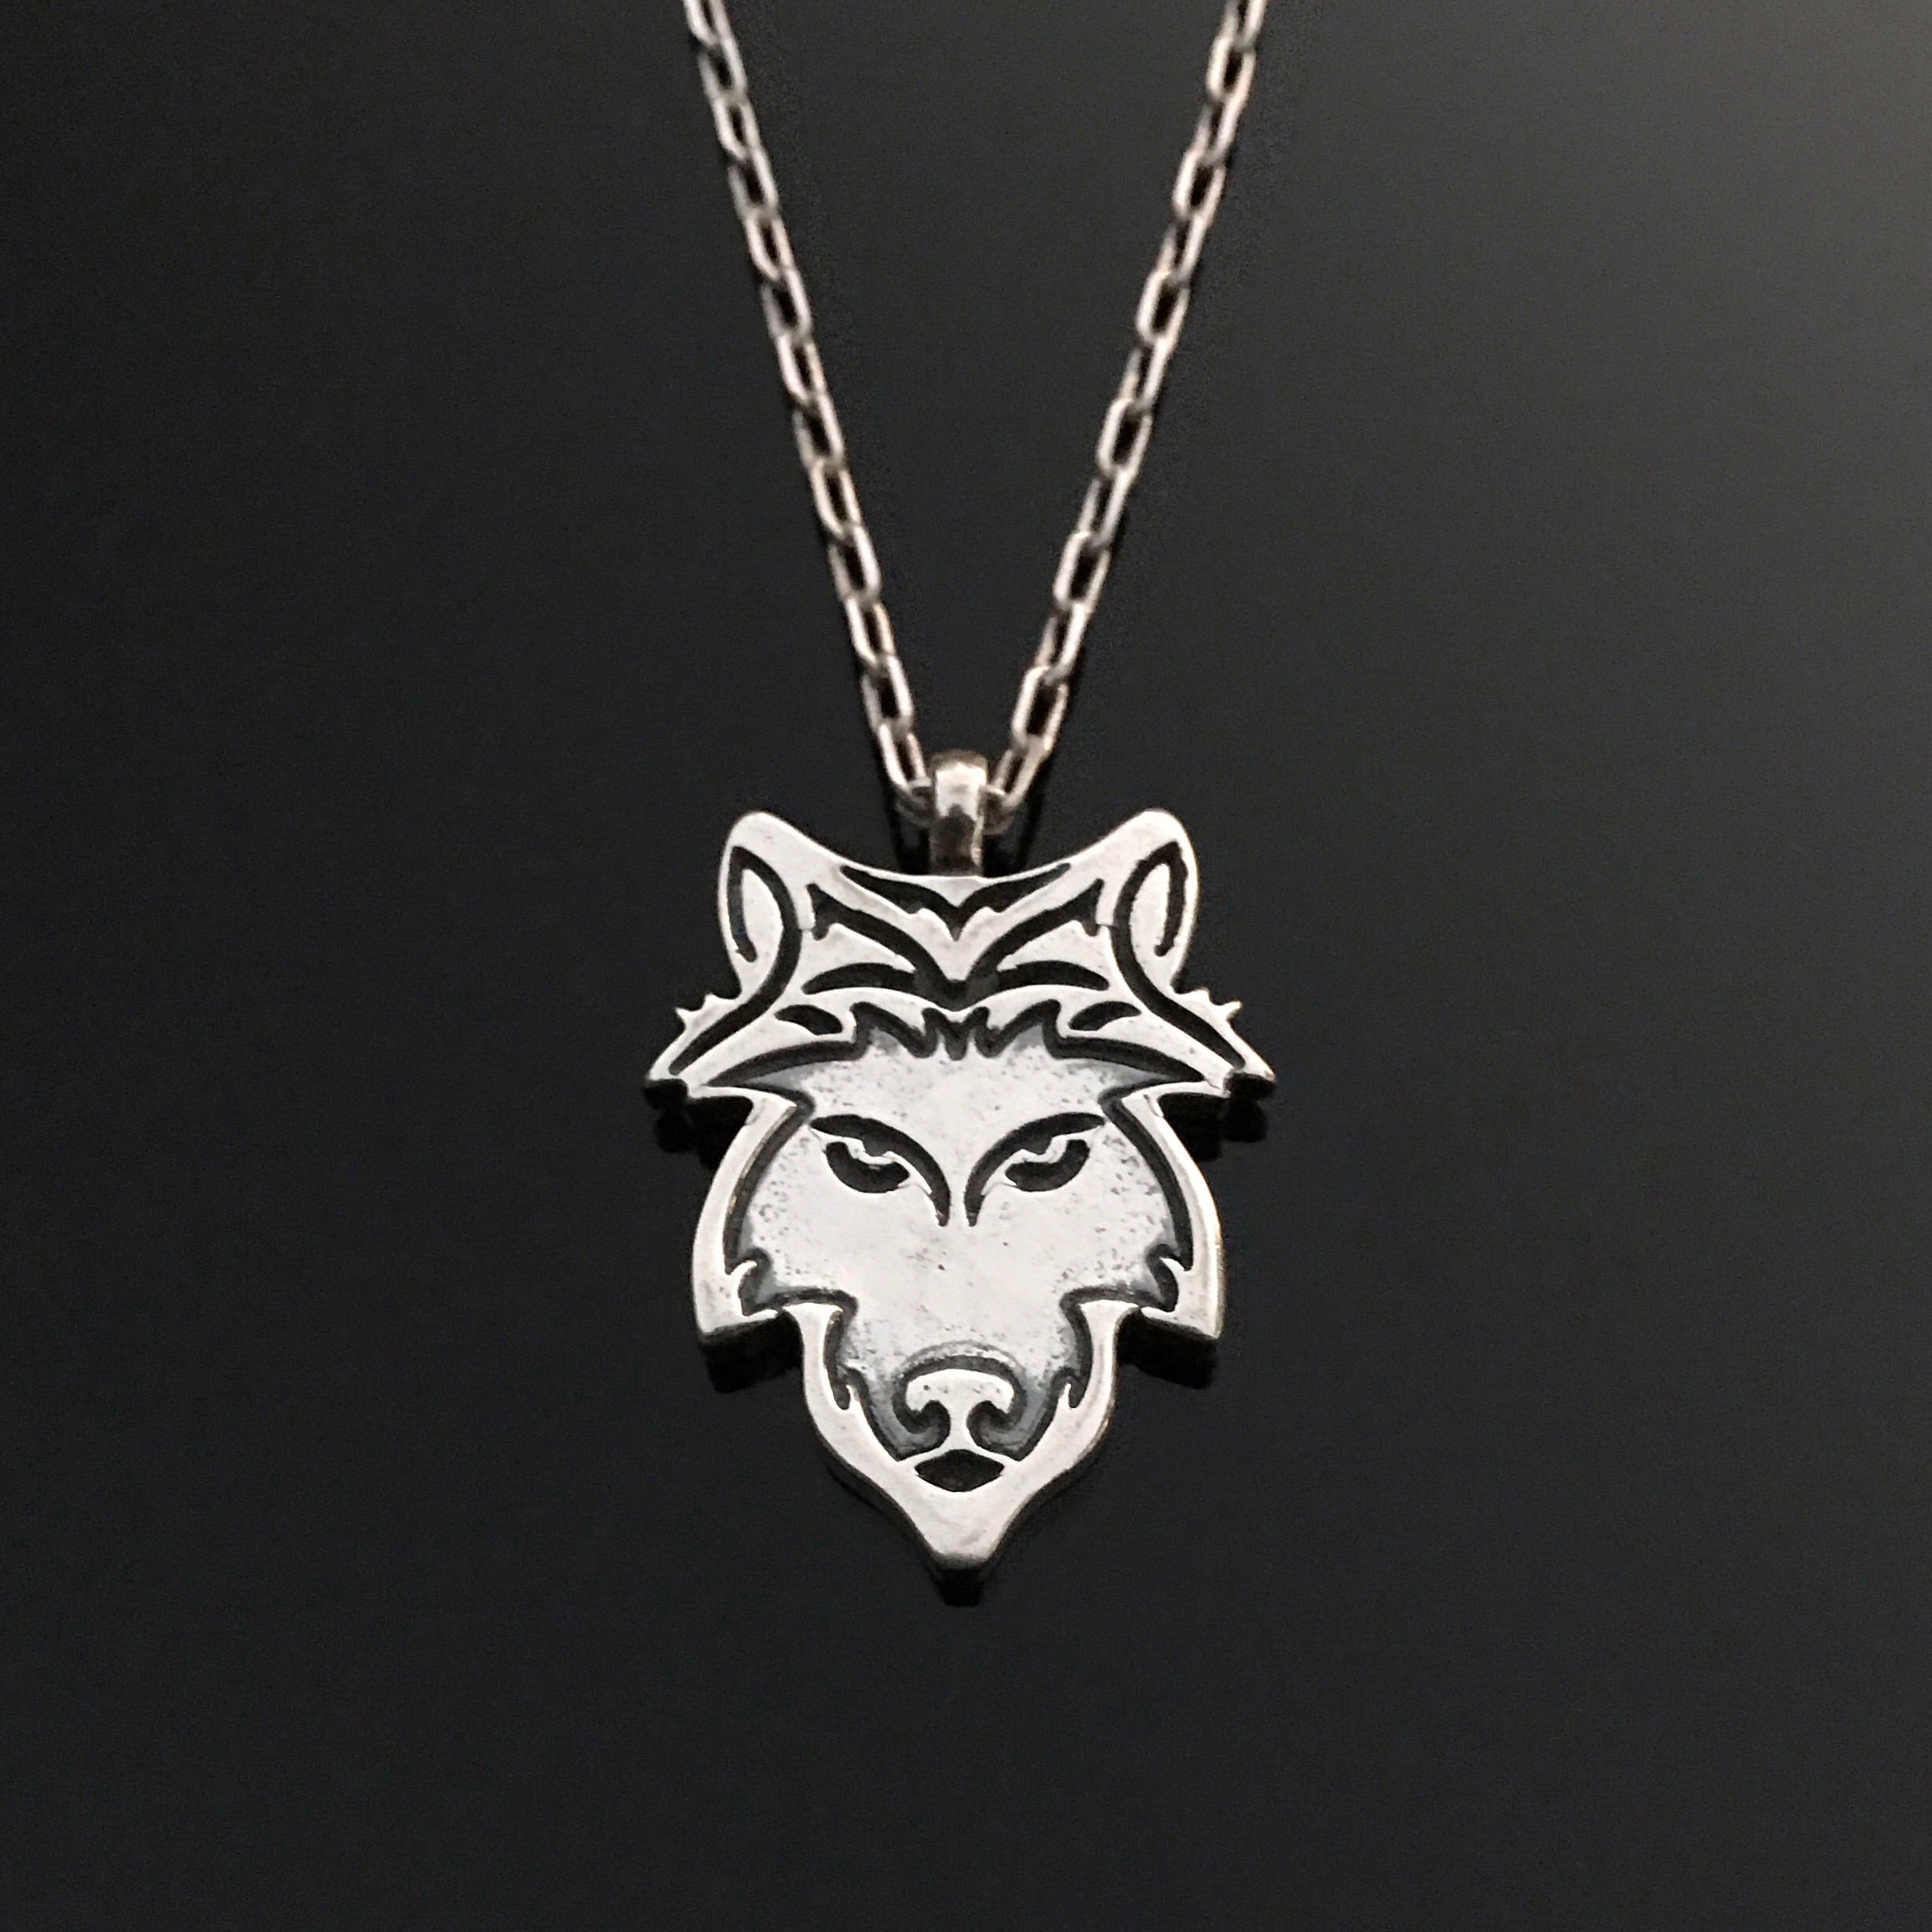 dragon jewellery wolf category pendants product silver solid head mist design fine pendant